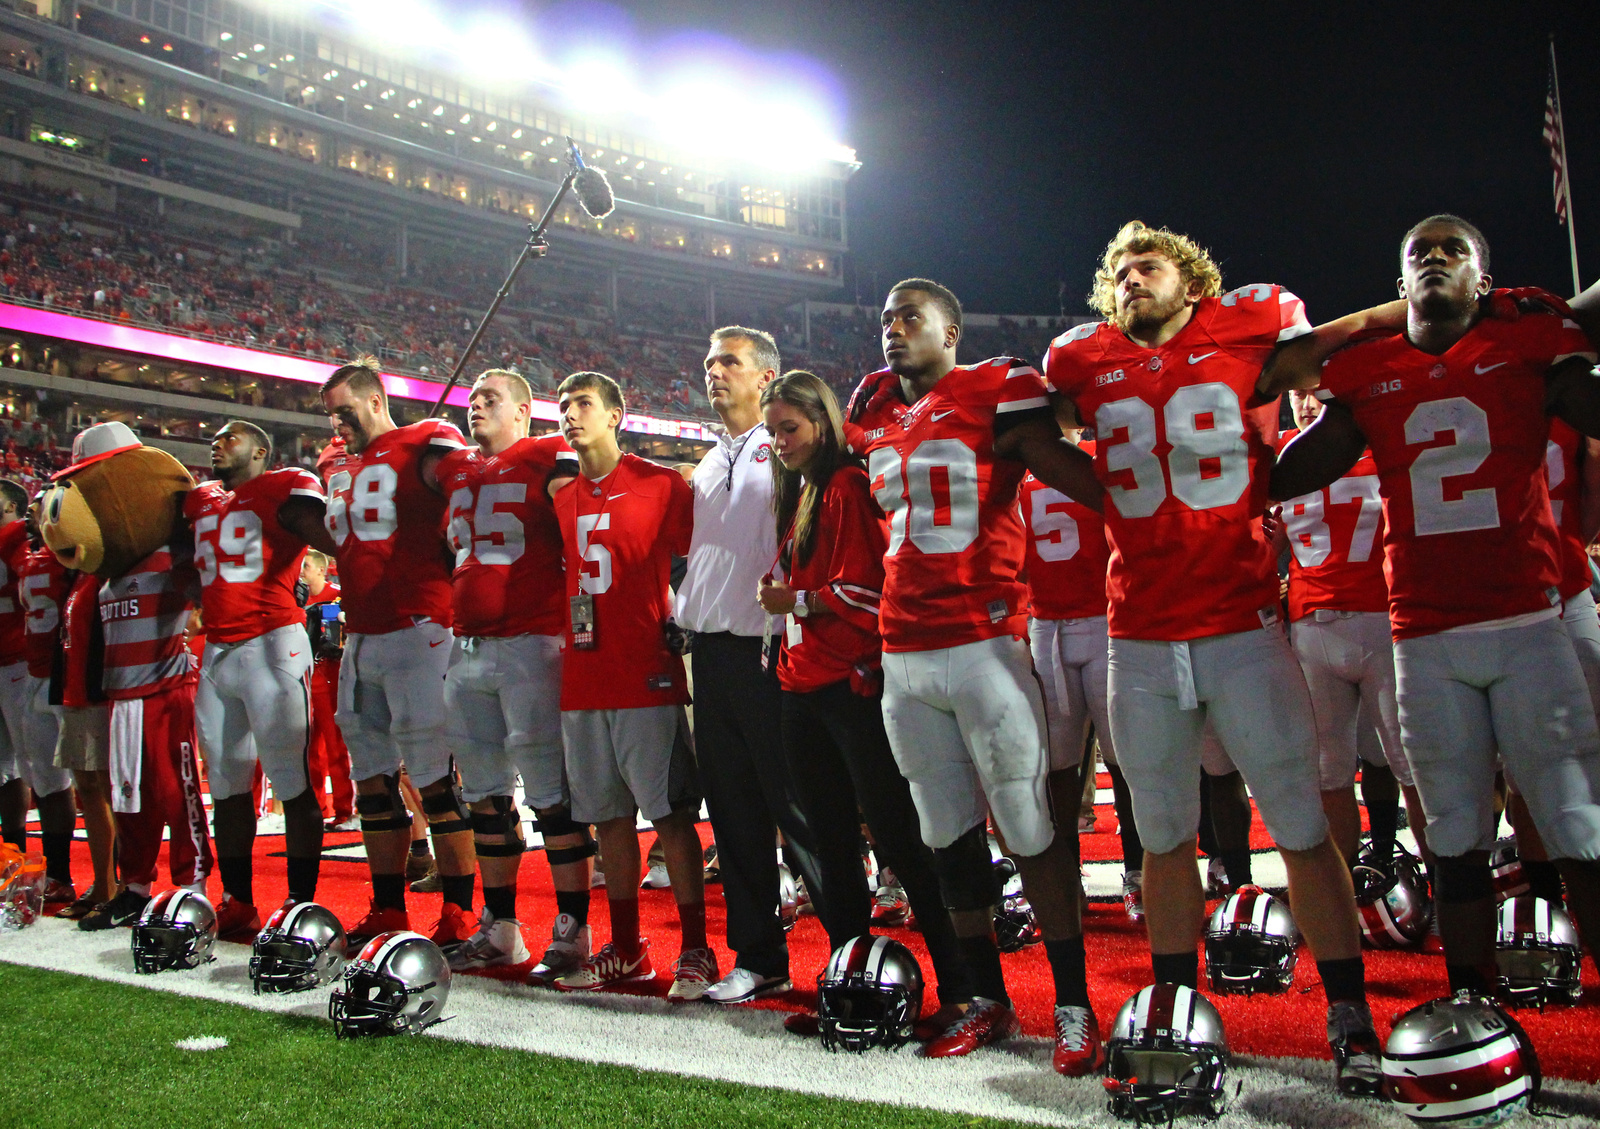 OSU coach Urban Meyer (white jacket), two of his children and members of the OSU football team sing 'Carmen Ohio' after the Buckeyes' 35-21 loss to Virginia Tech on Sept. 6 at Ohio Stadium. Credit: Mark Batke / Photo editor